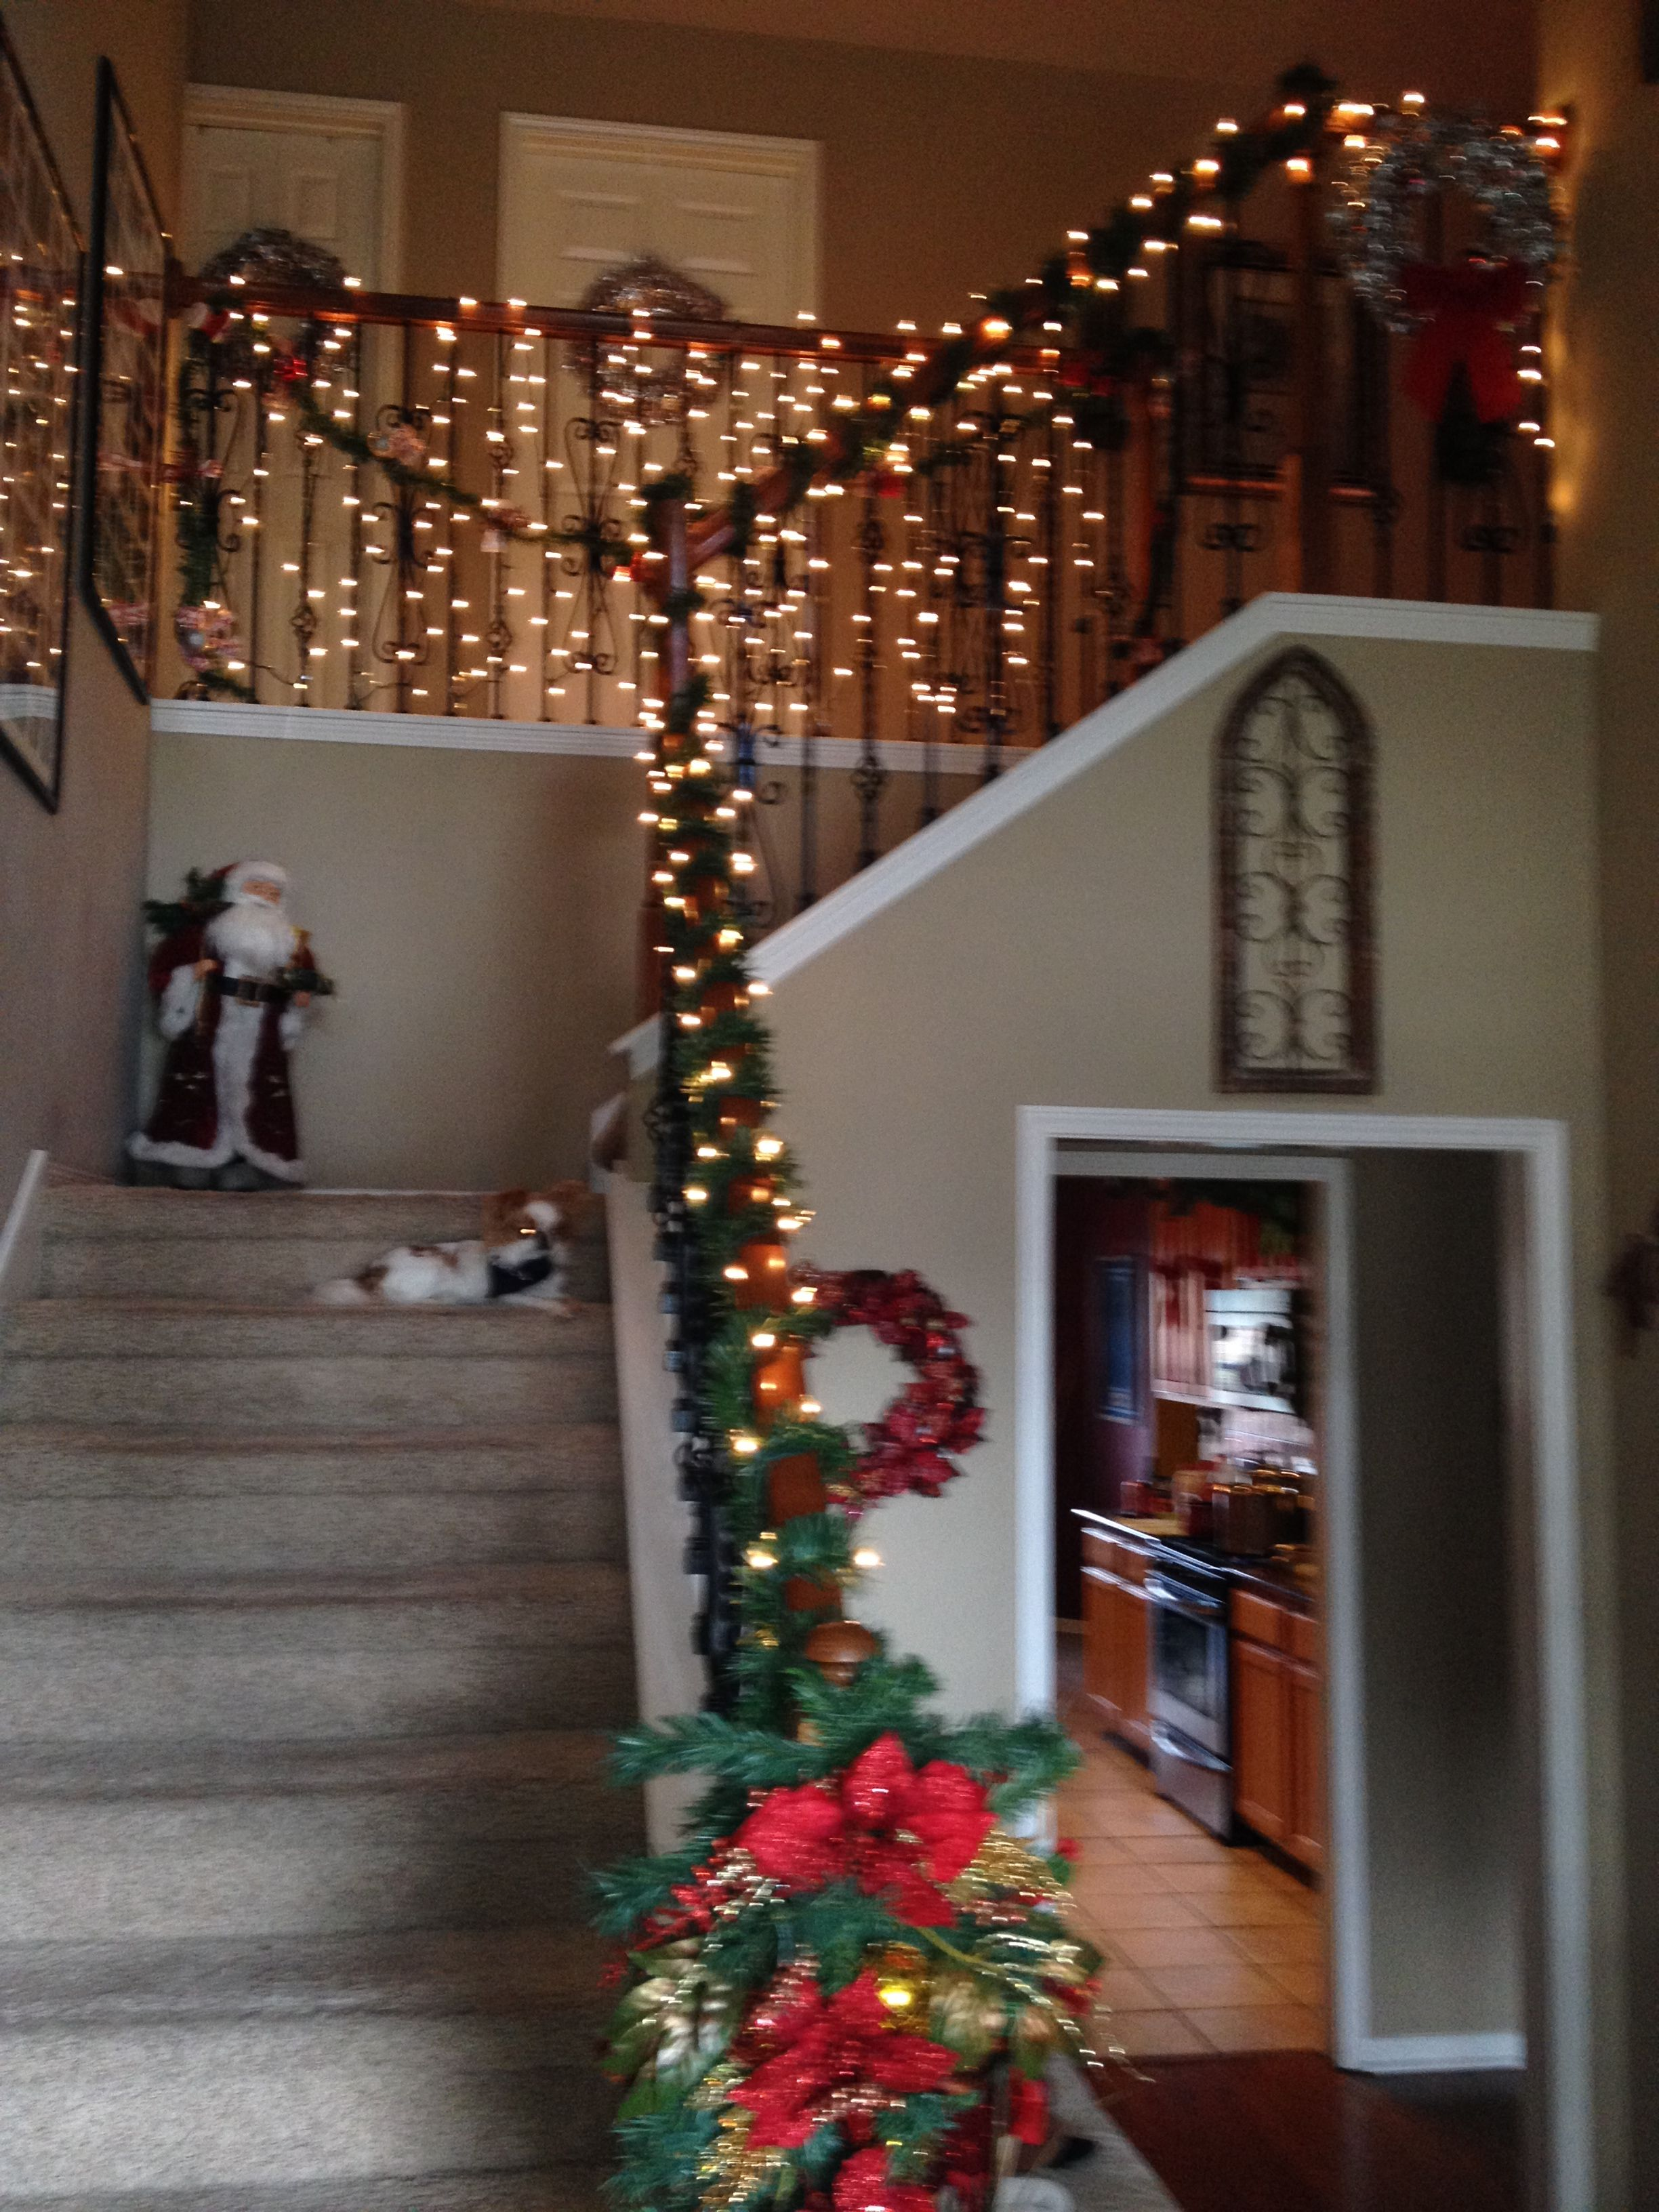 Decorated Banister for Christmas lighting the way for Santa